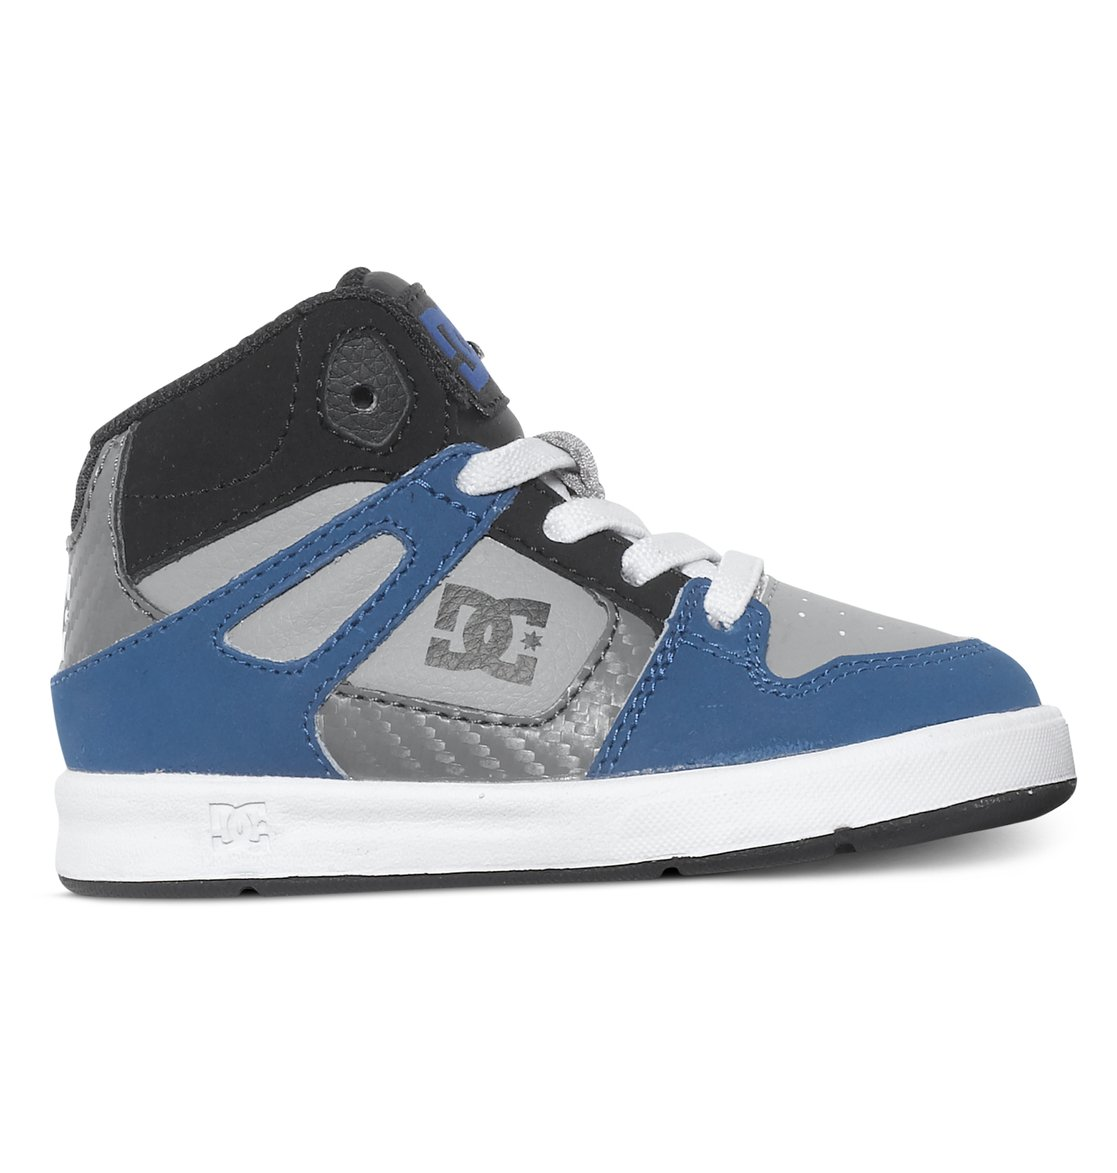 Rebound UL - Dcshoes������� ���� Rebound UL ��� ��������� �� DC Shoes. <br>��������������: ������� ����, ������� ��� � �������������� ���������, ������������� �� ���������� ������, ������� ���� � ������� � ������ ������������, ������������� ������ � ���������� ������� UniLite�, ��������� ������� ���������� ������� DC Pill Pattern. <br>������: ����: ���� / ���������: �������� / �������: ������� EVA.<br>